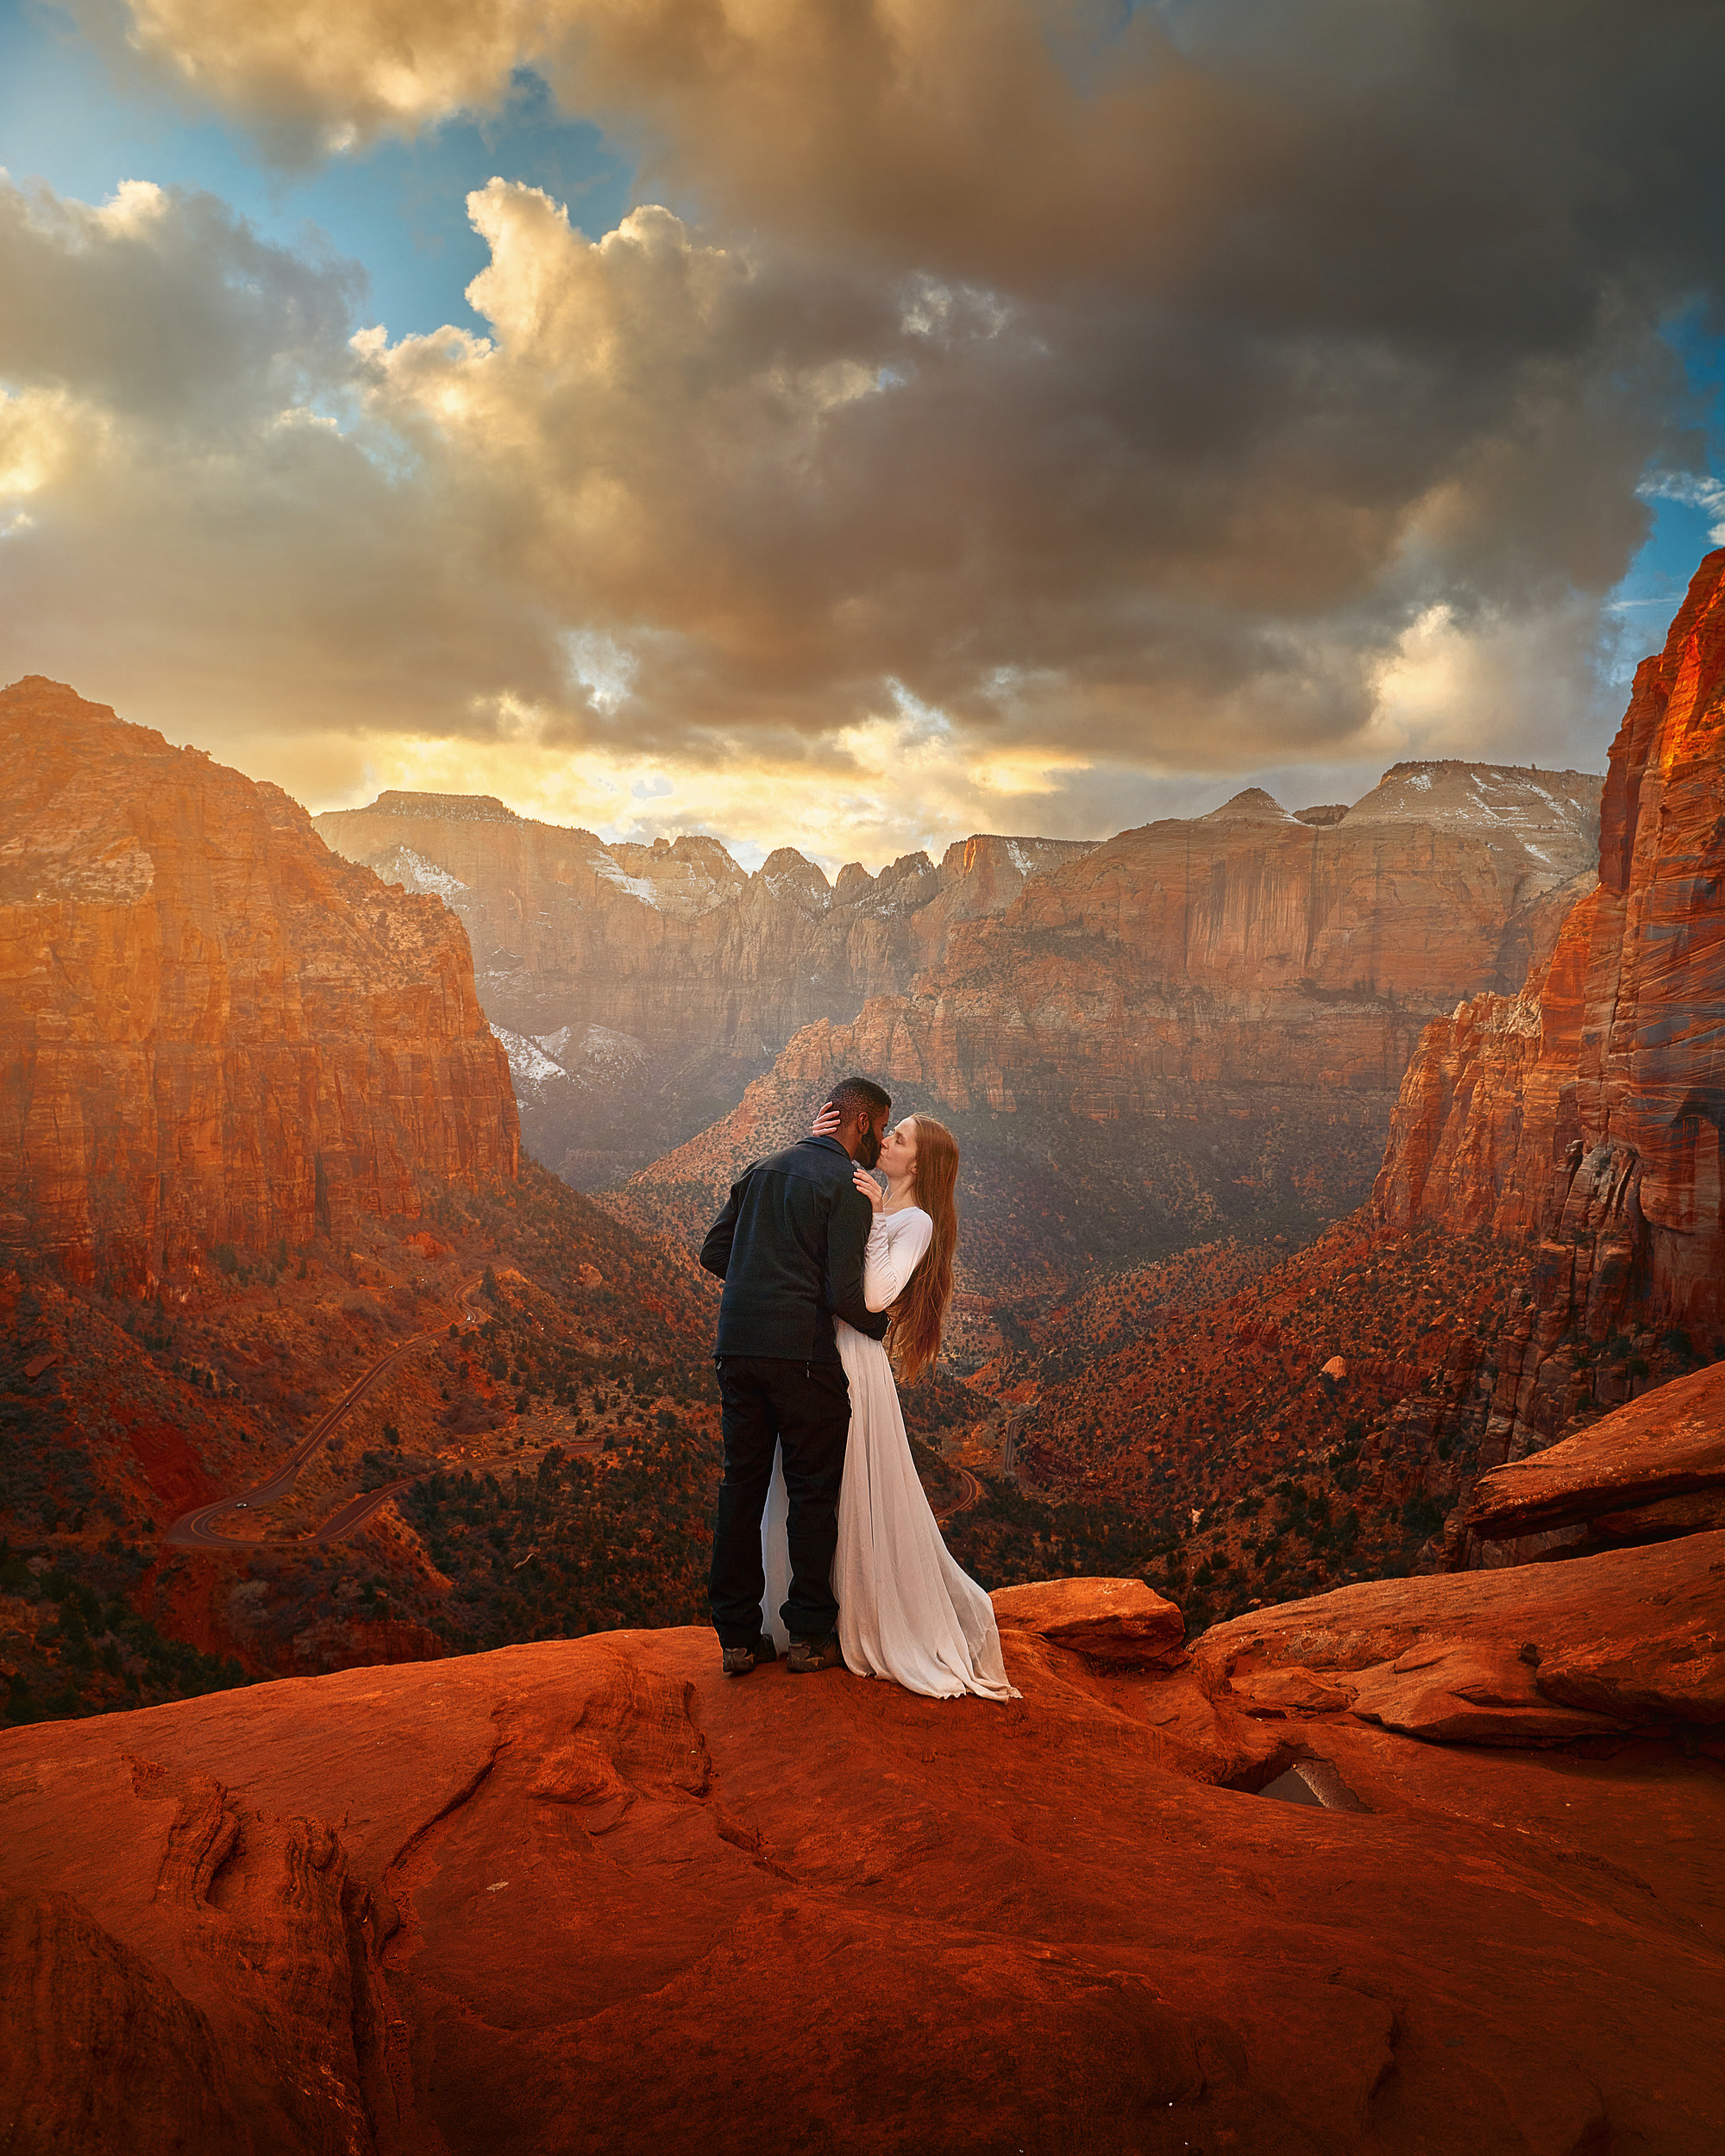 A woman in a long white dress with long hair kissing a man in all black on the edge of a cliff. They are surrounded by red sandstone mountains and rock formations on a cloudy day. You can see snow on some of the mountains.